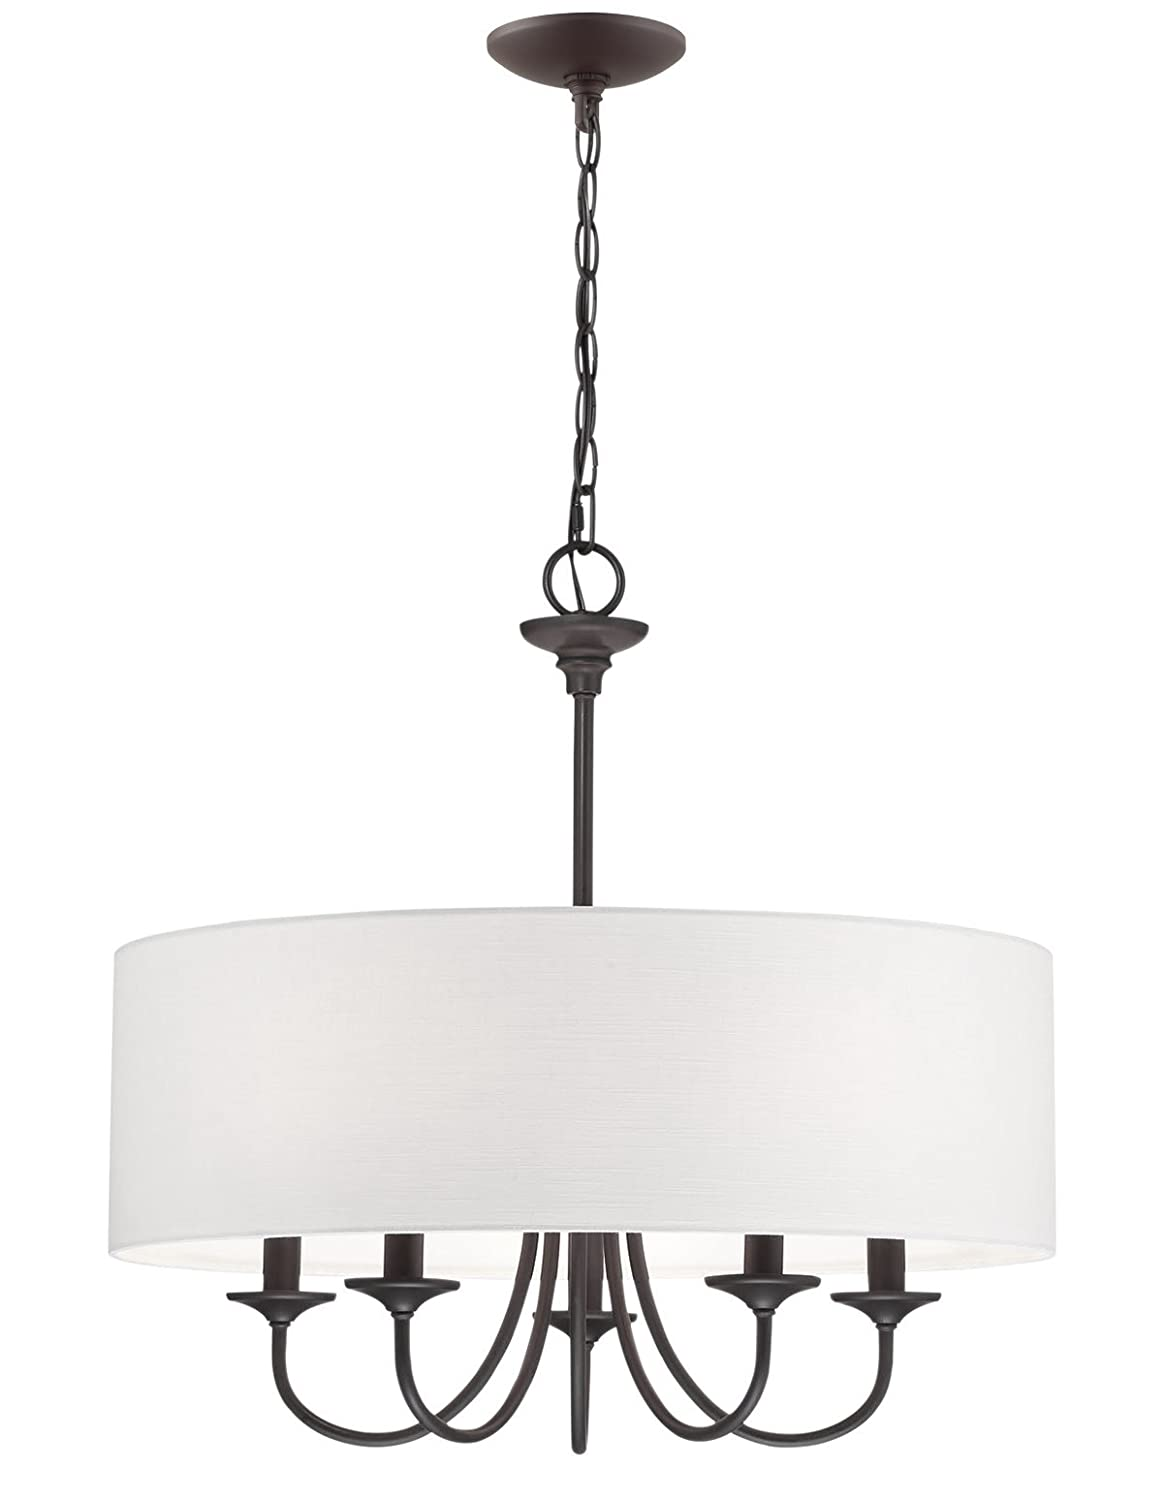 Kira Home Quinn 21 Traditional 5-Light Chandelier White Linen Drum Shade, Oil-Rubbed Bronze Finish